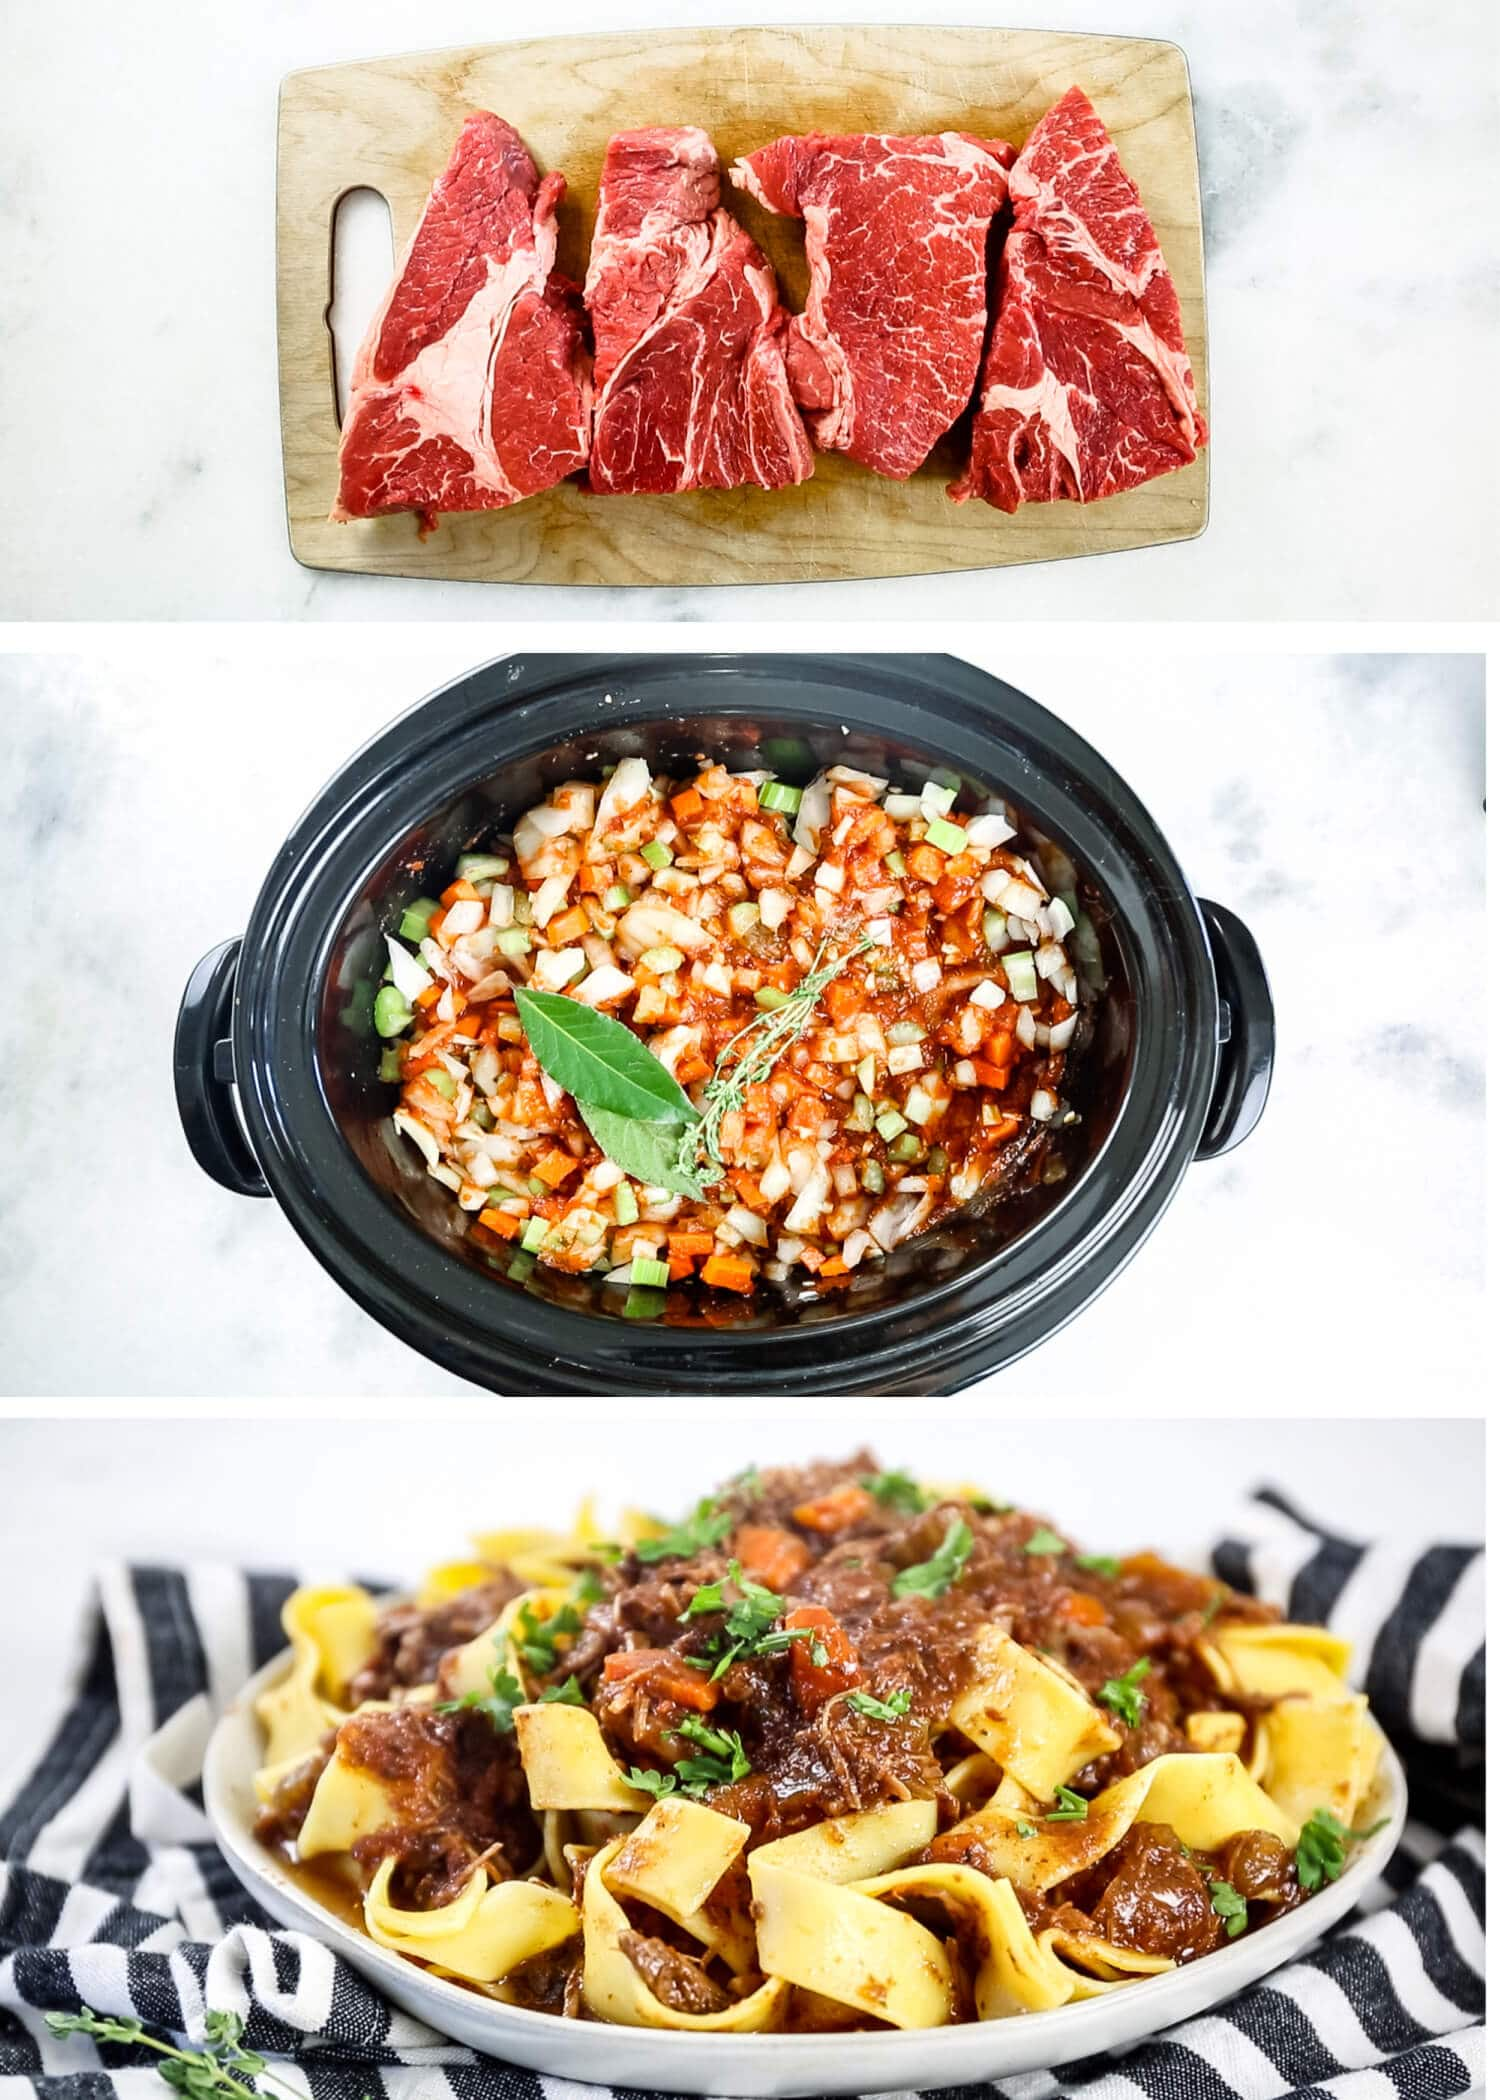 step by step pictures of how to make beef ragu including chuck roast, slow cooker ingredients and finished recipe